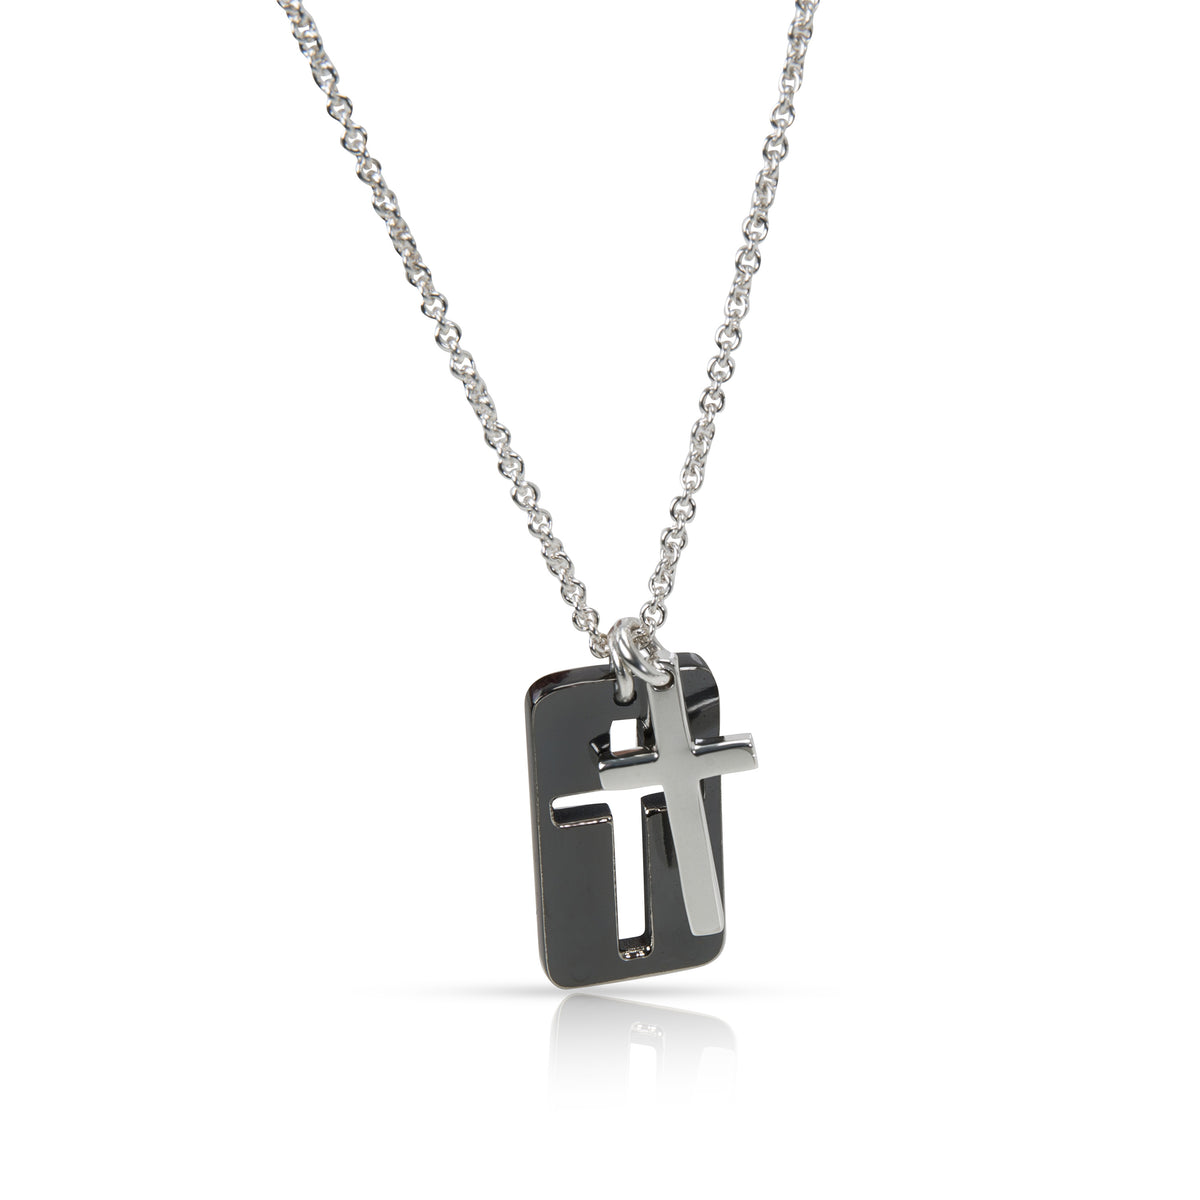 Tiffany & Co. Cut Out Cross Necklace in  Sterling Silver